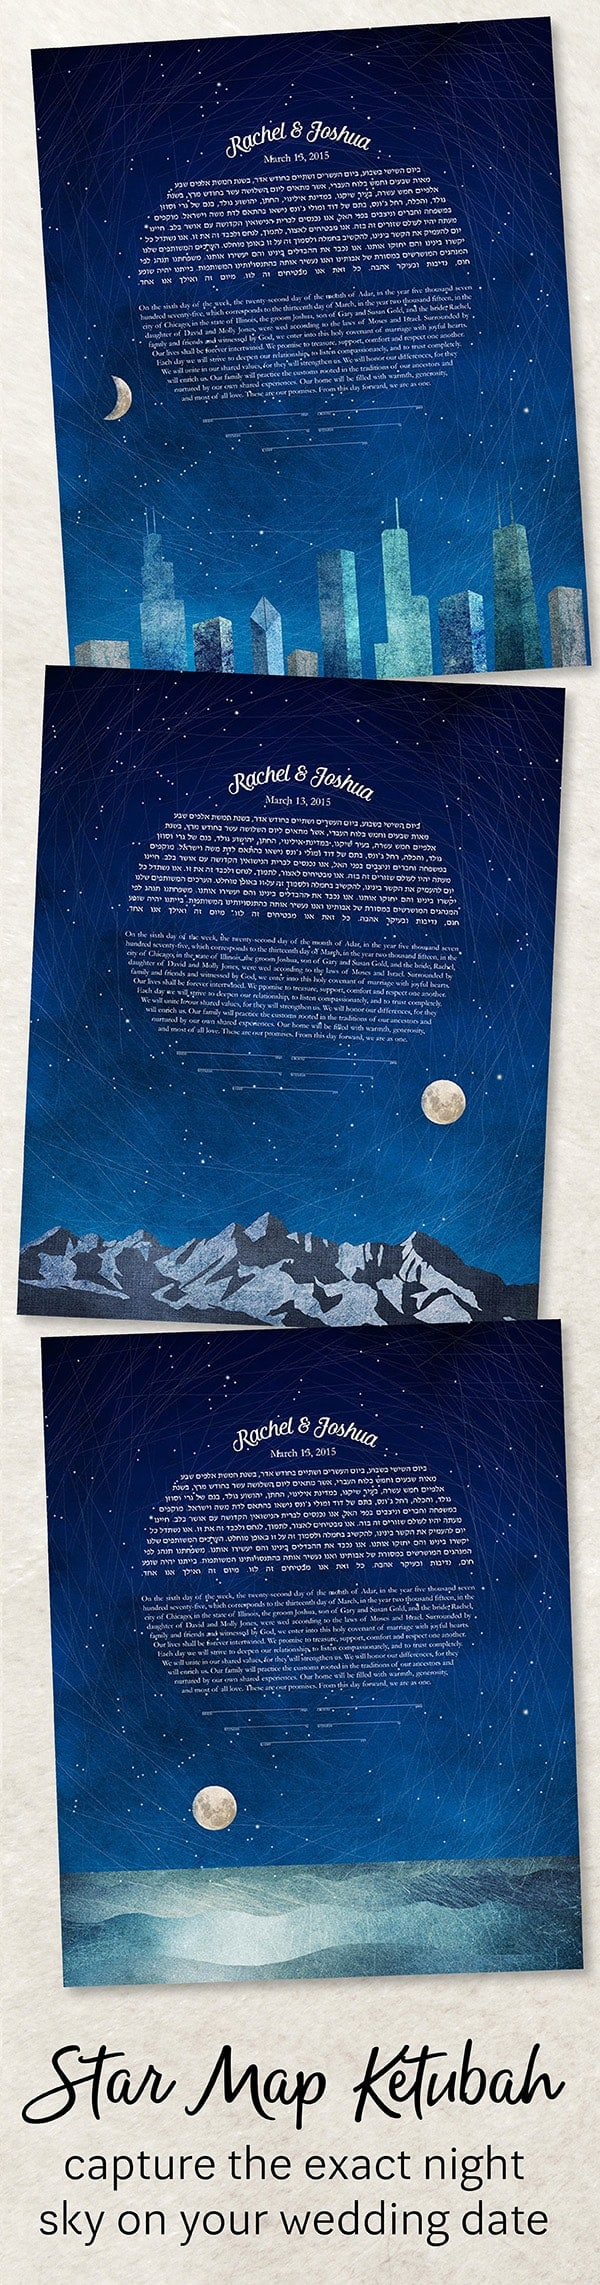 Star Map Ketubah